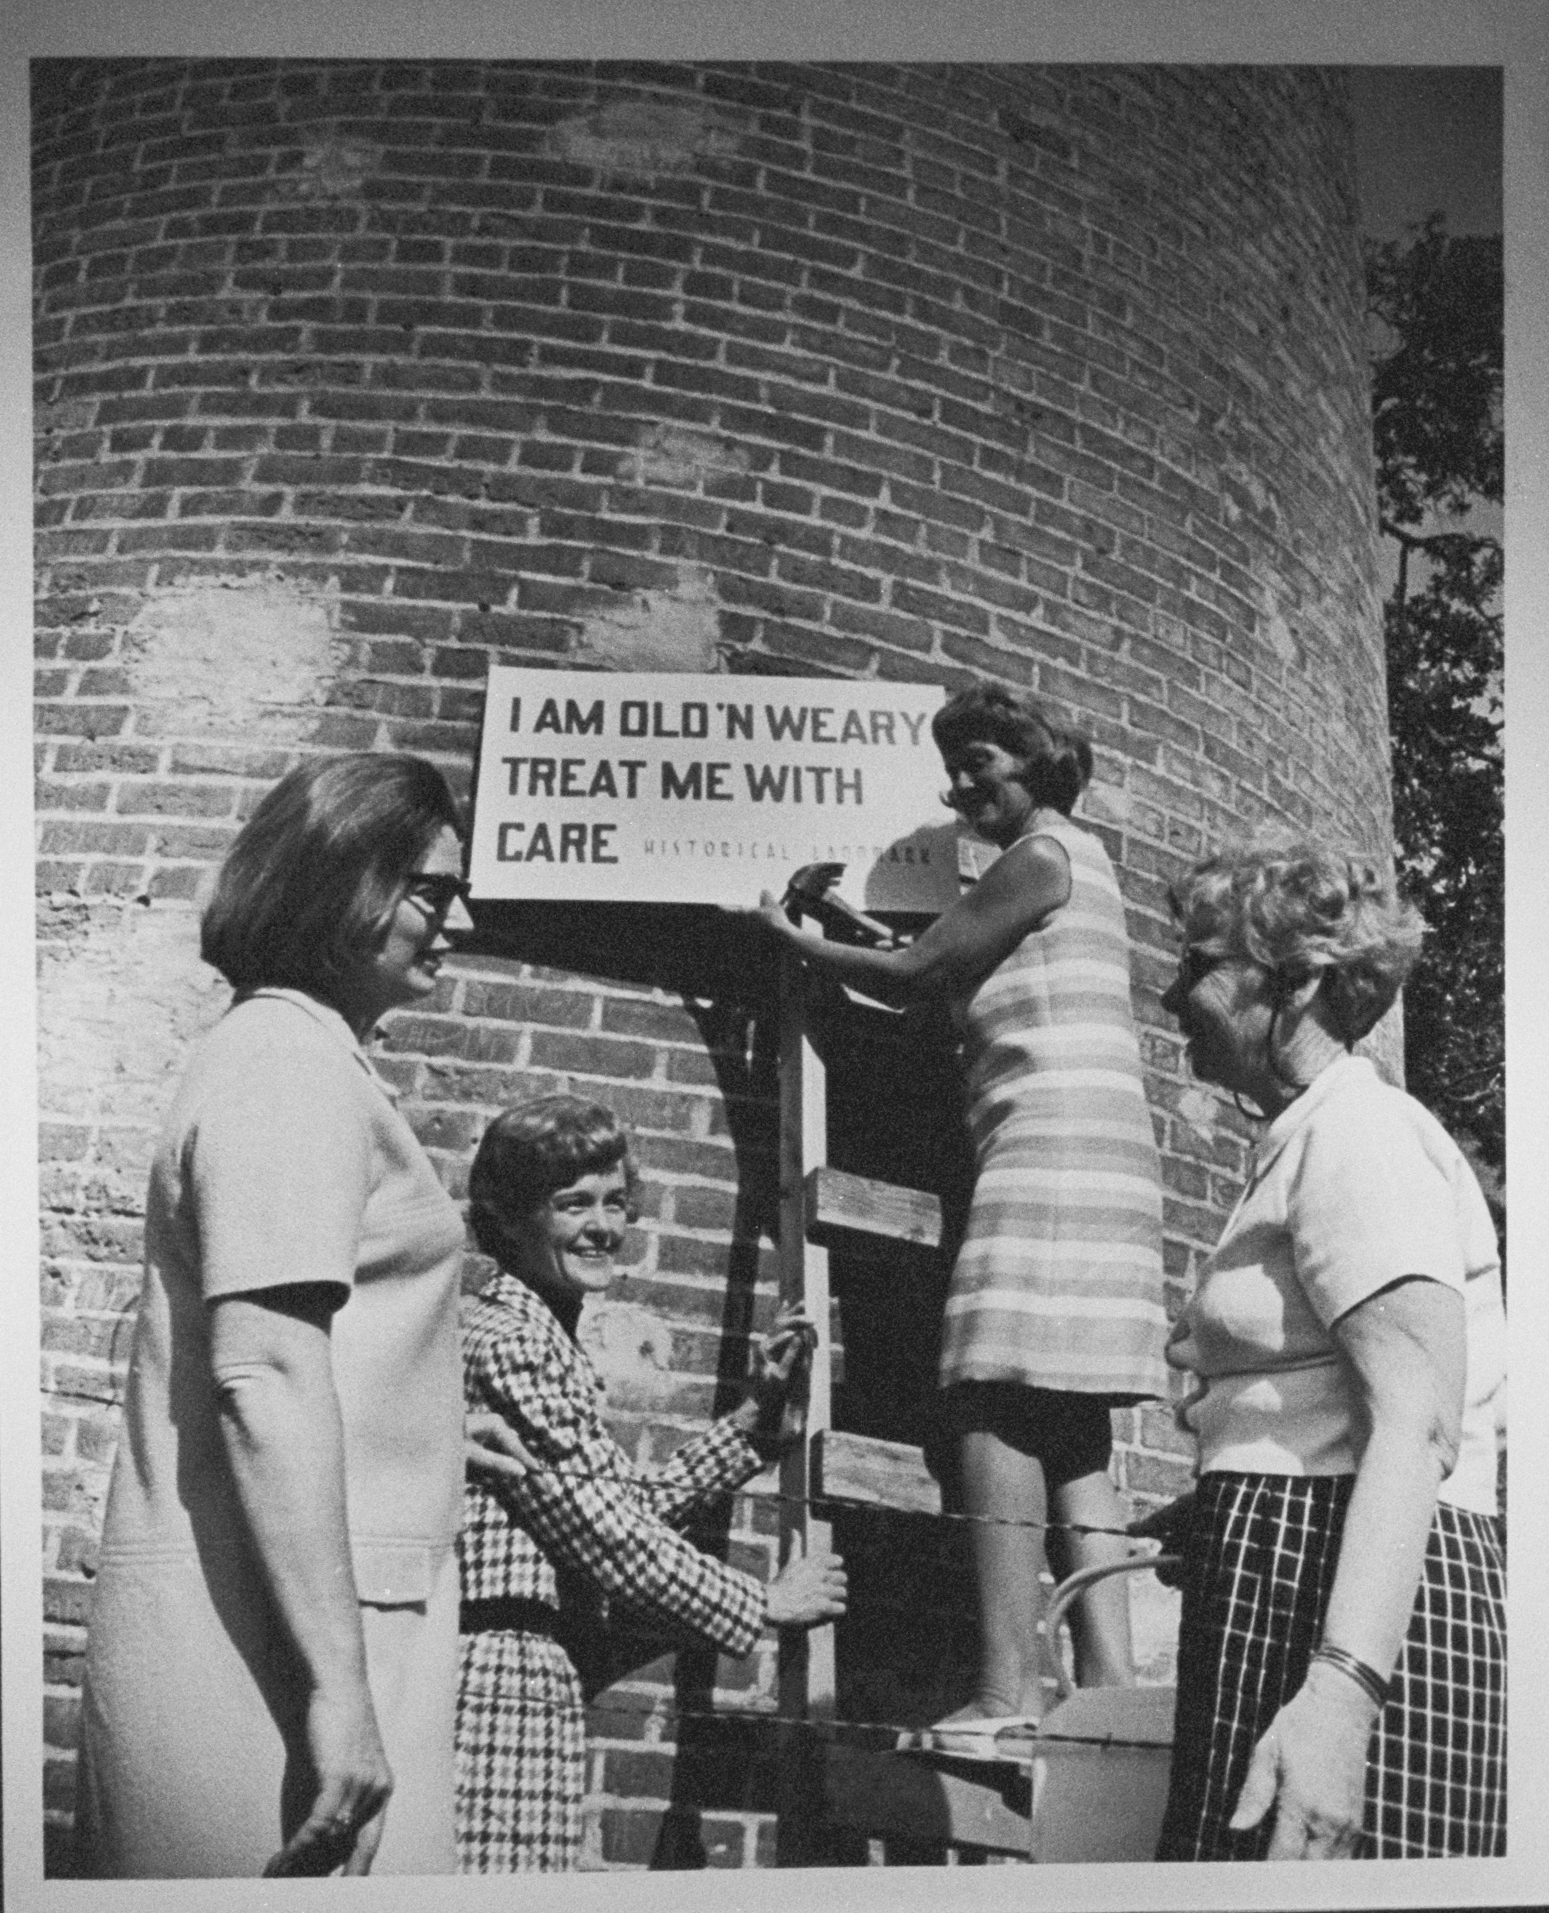 Frenchman's Tower with temporary sign, 1969